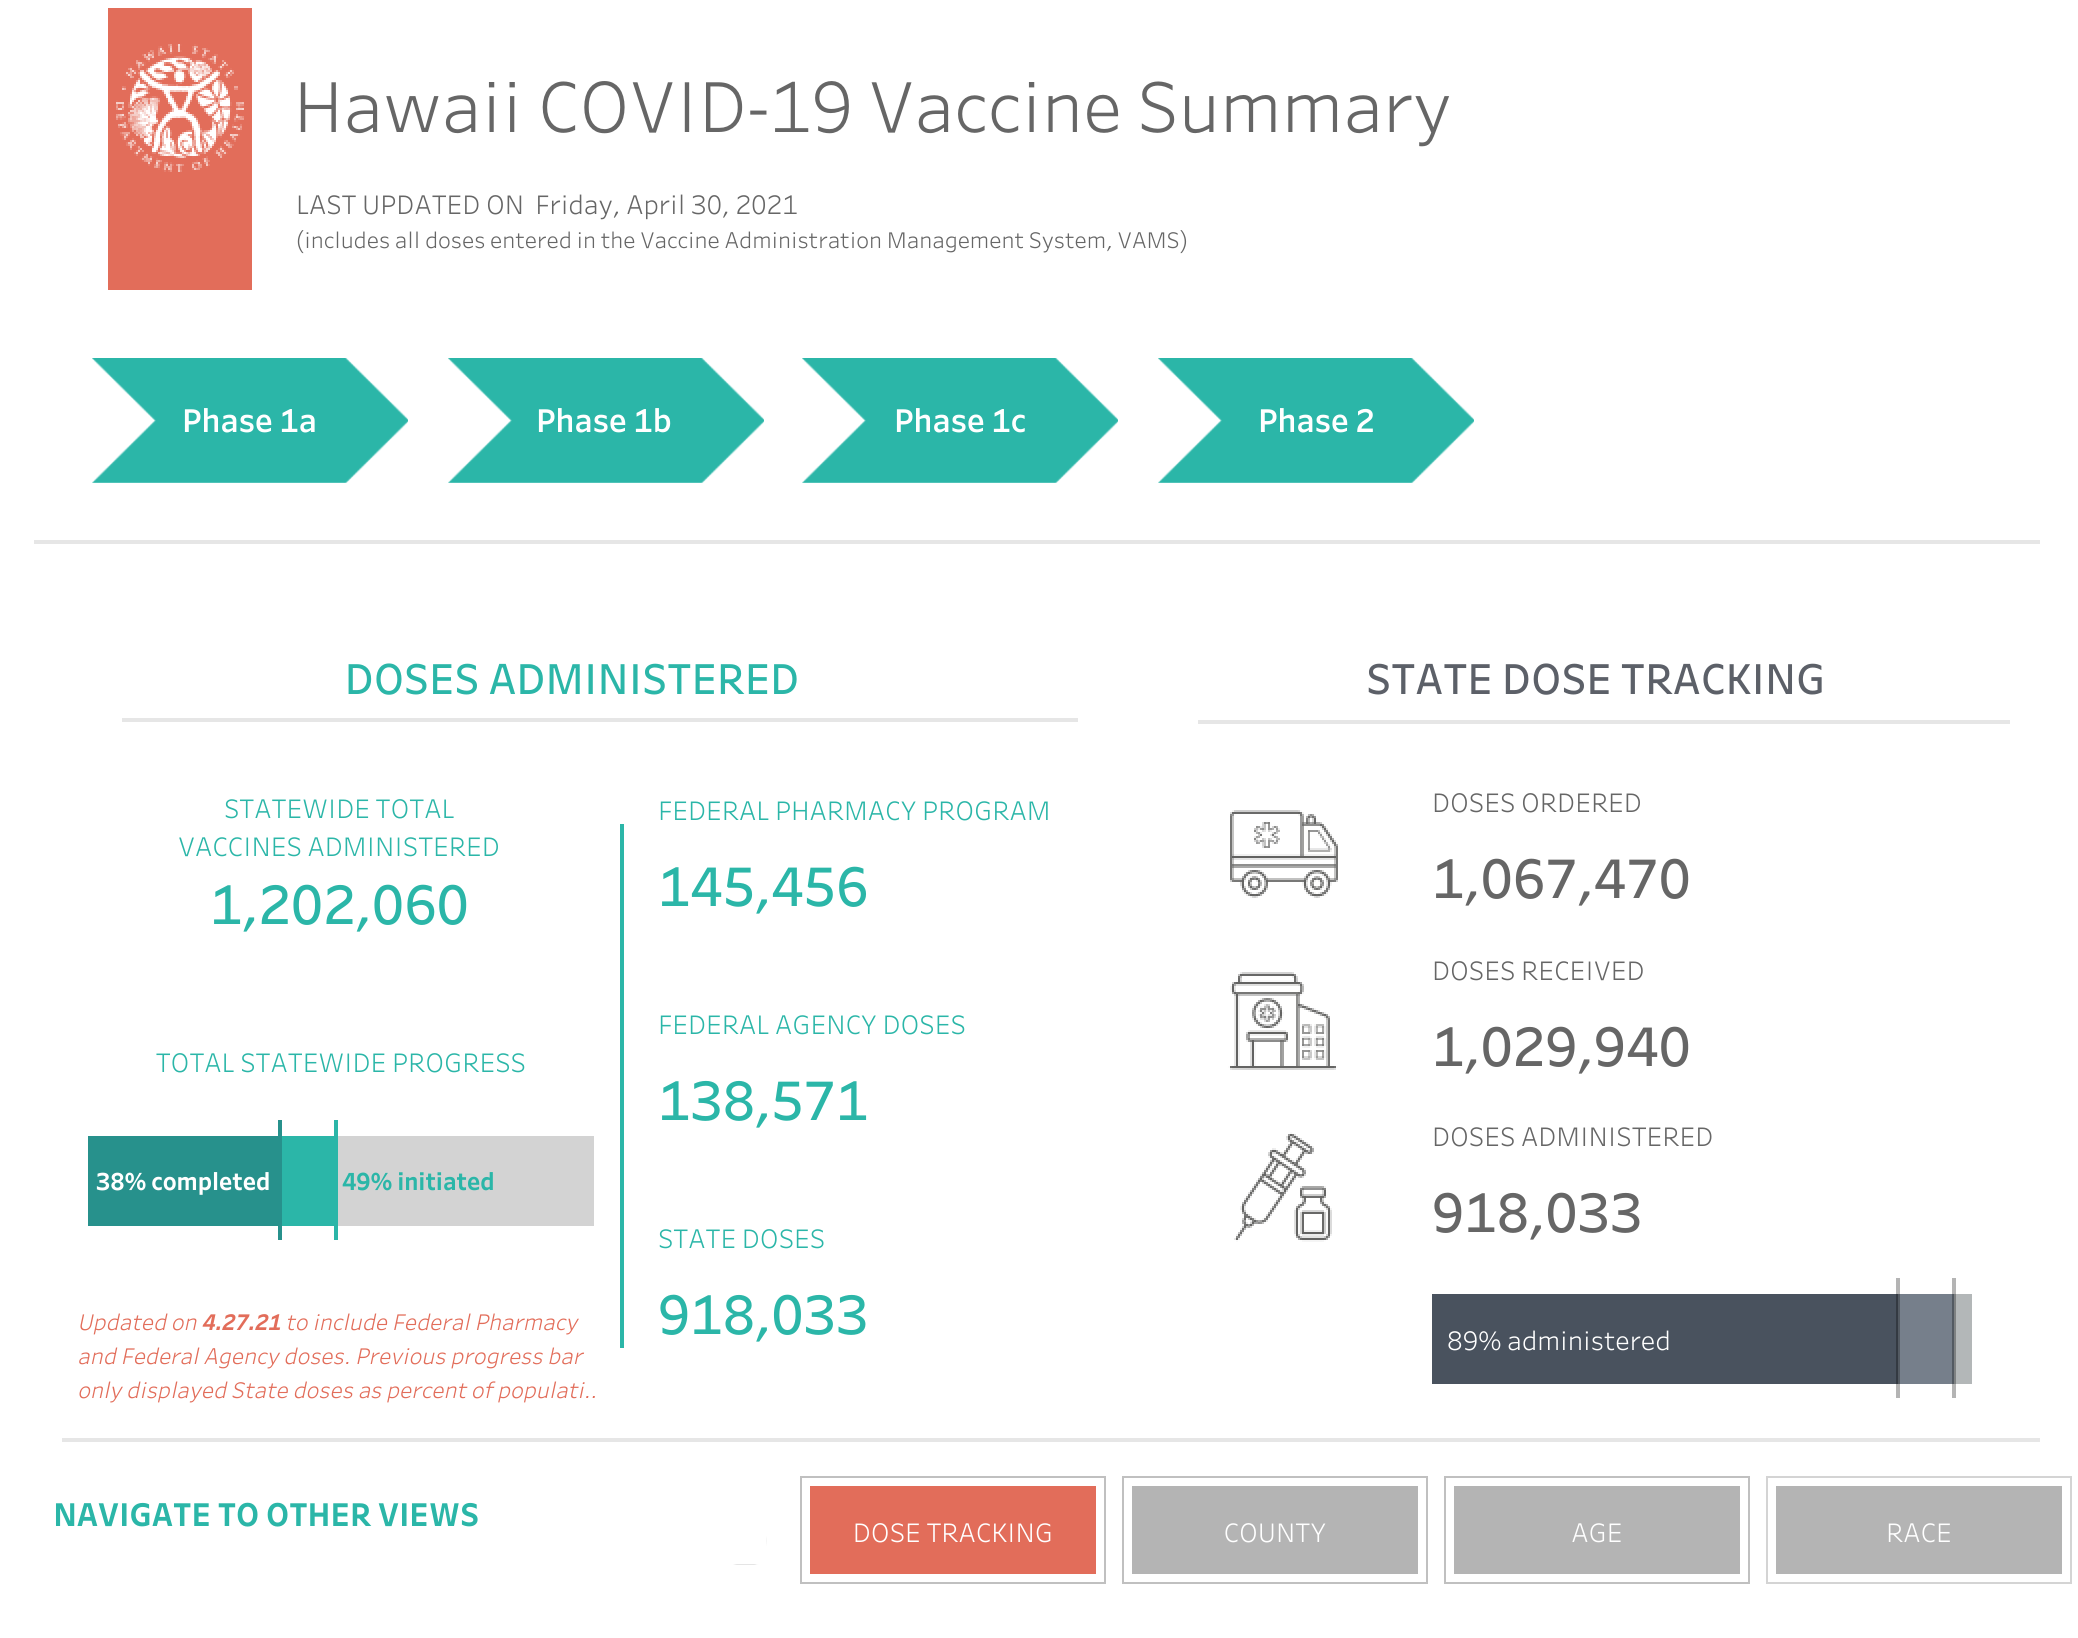 Hawaii COVID-19 Vaccine Summary April 30, 2021